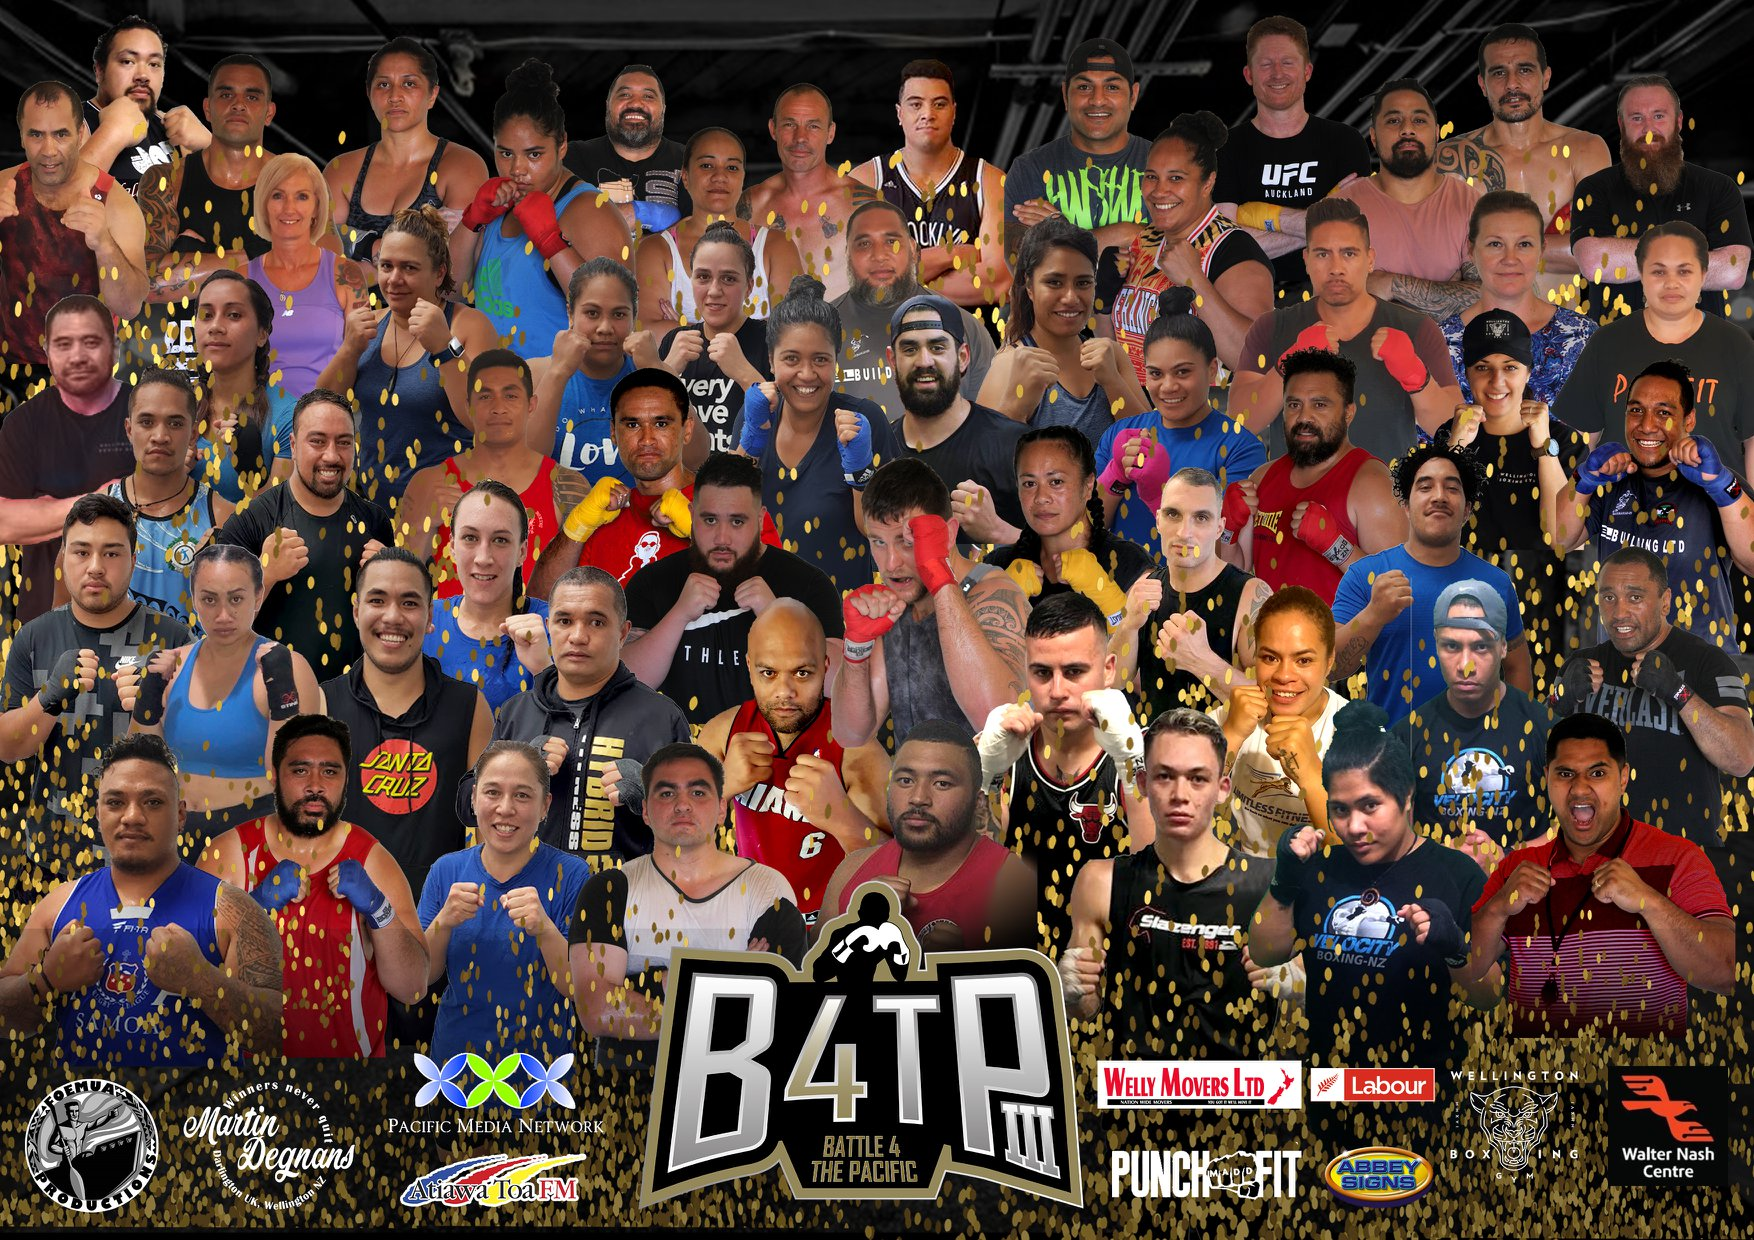 Fighters, trainers and promotion team that made up B4TPIII 2018